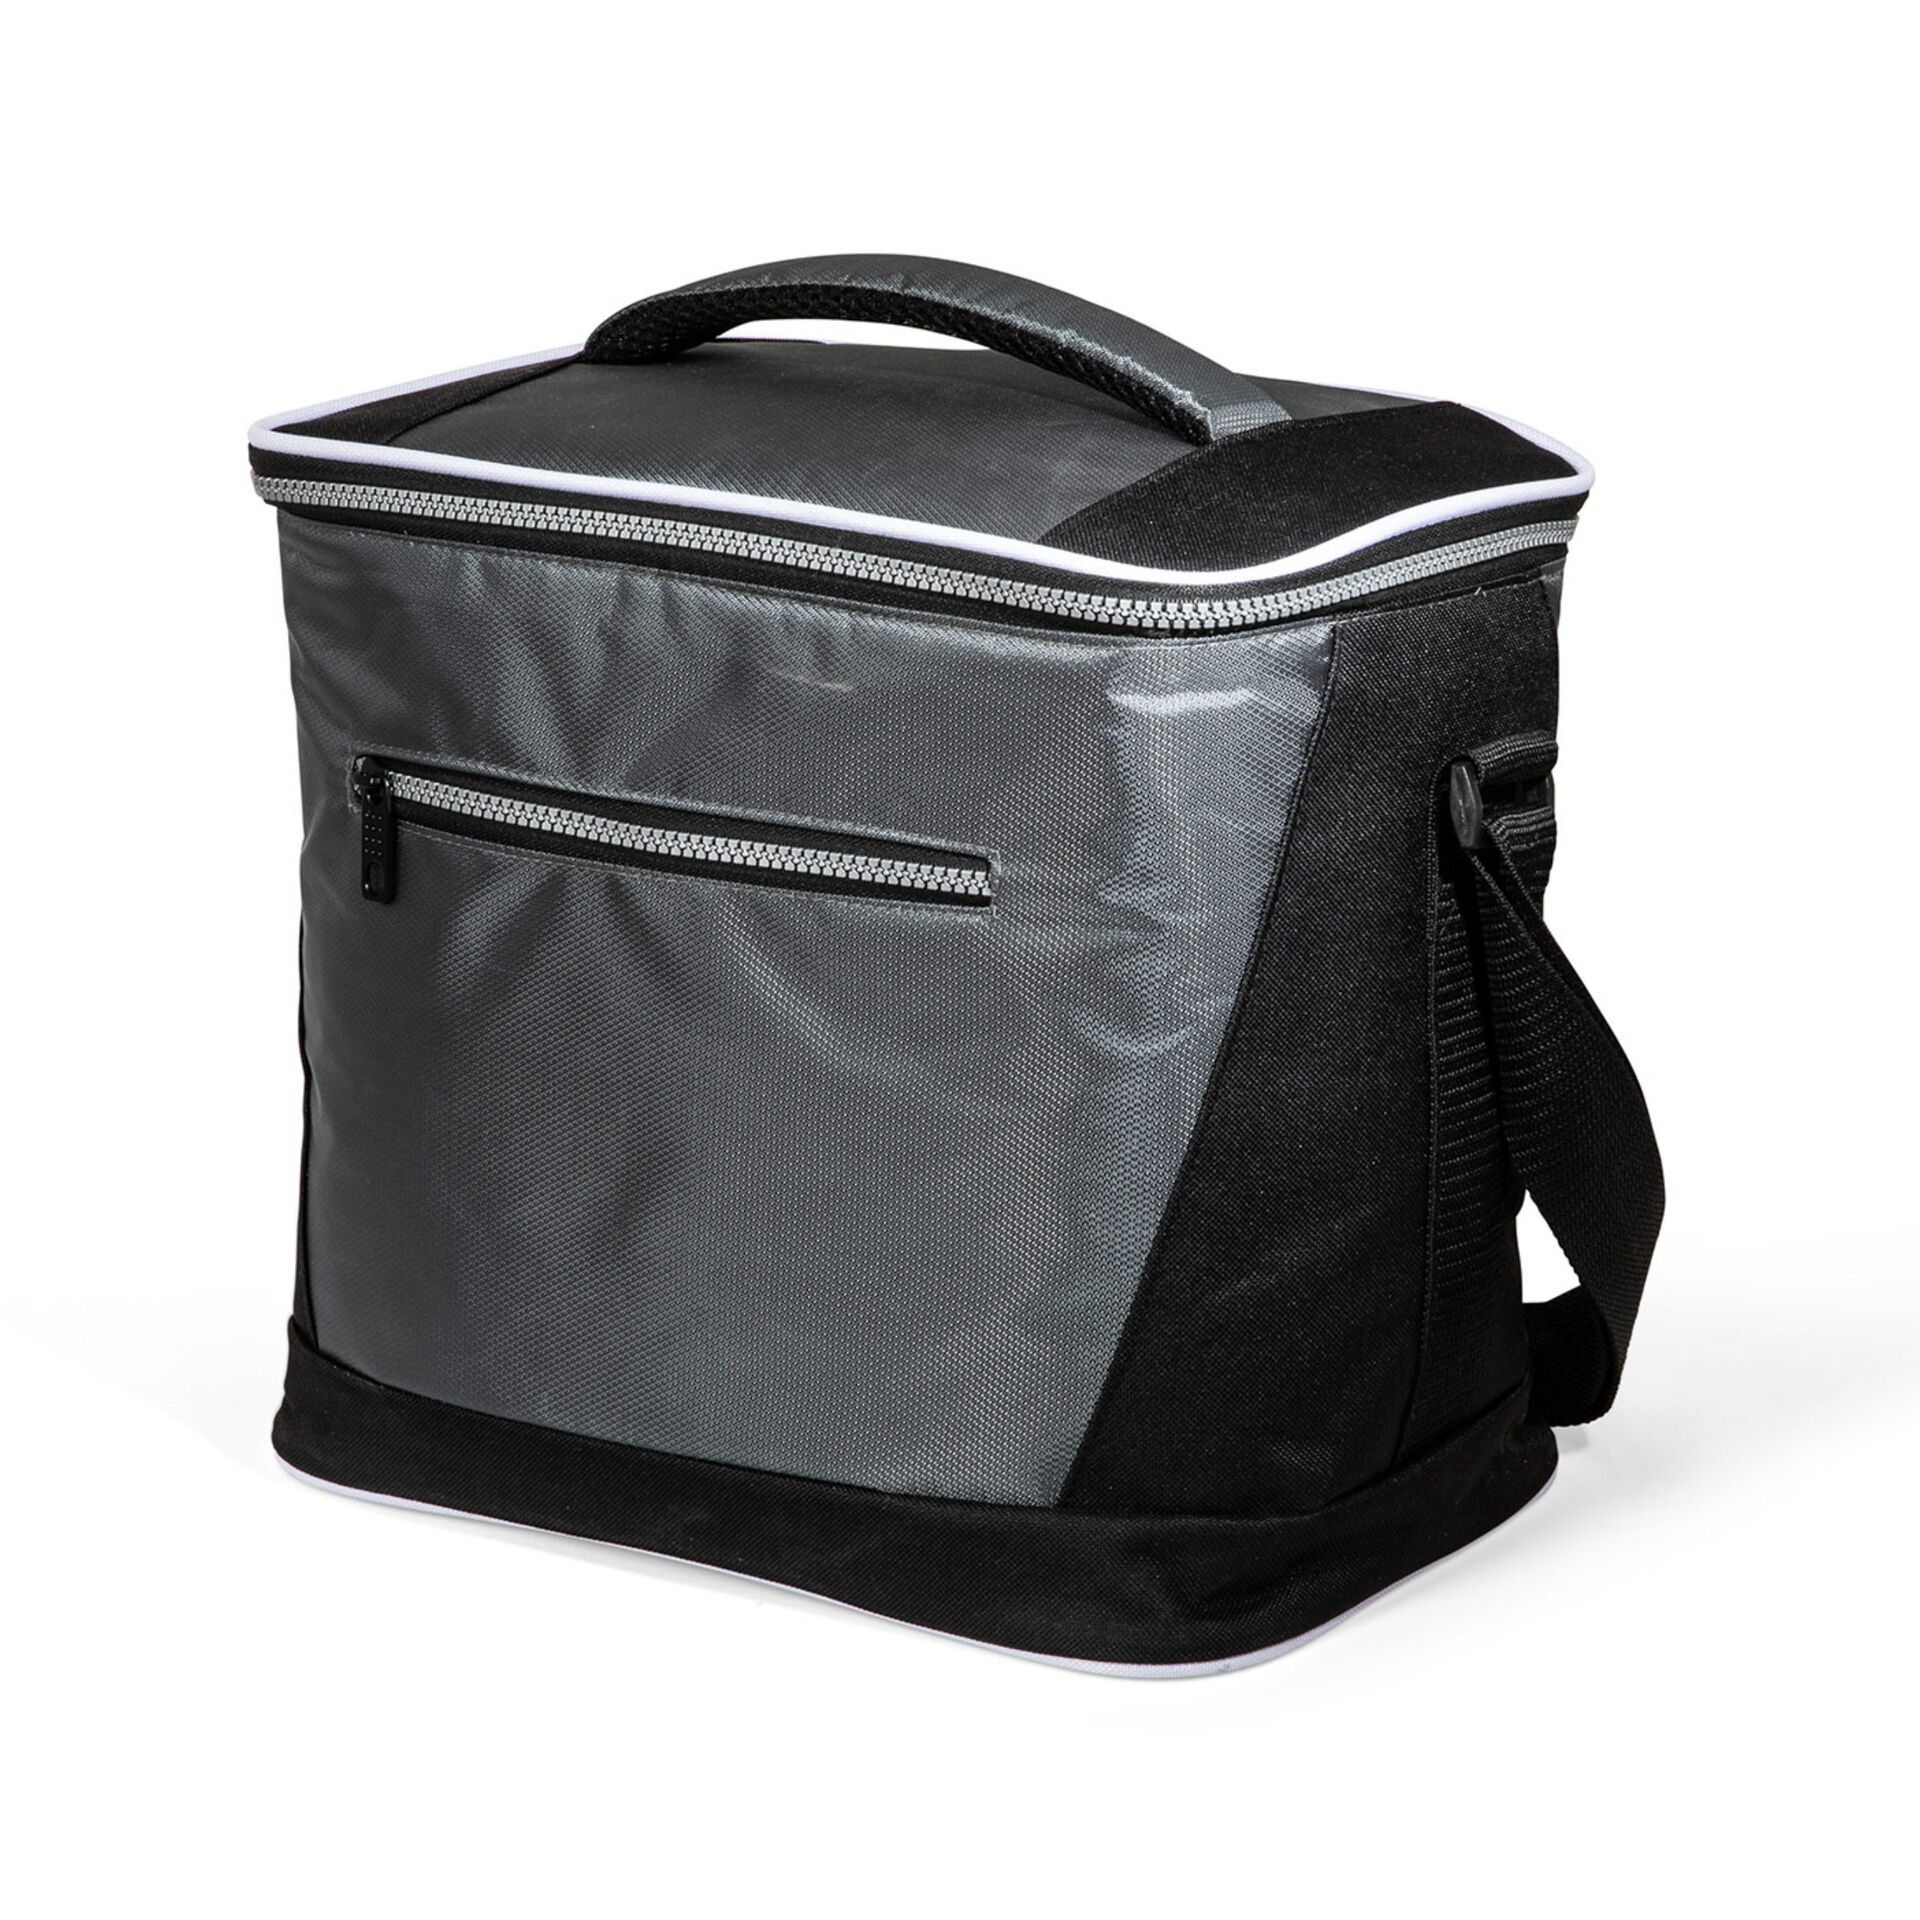 Sac isotherme 15 L, , large